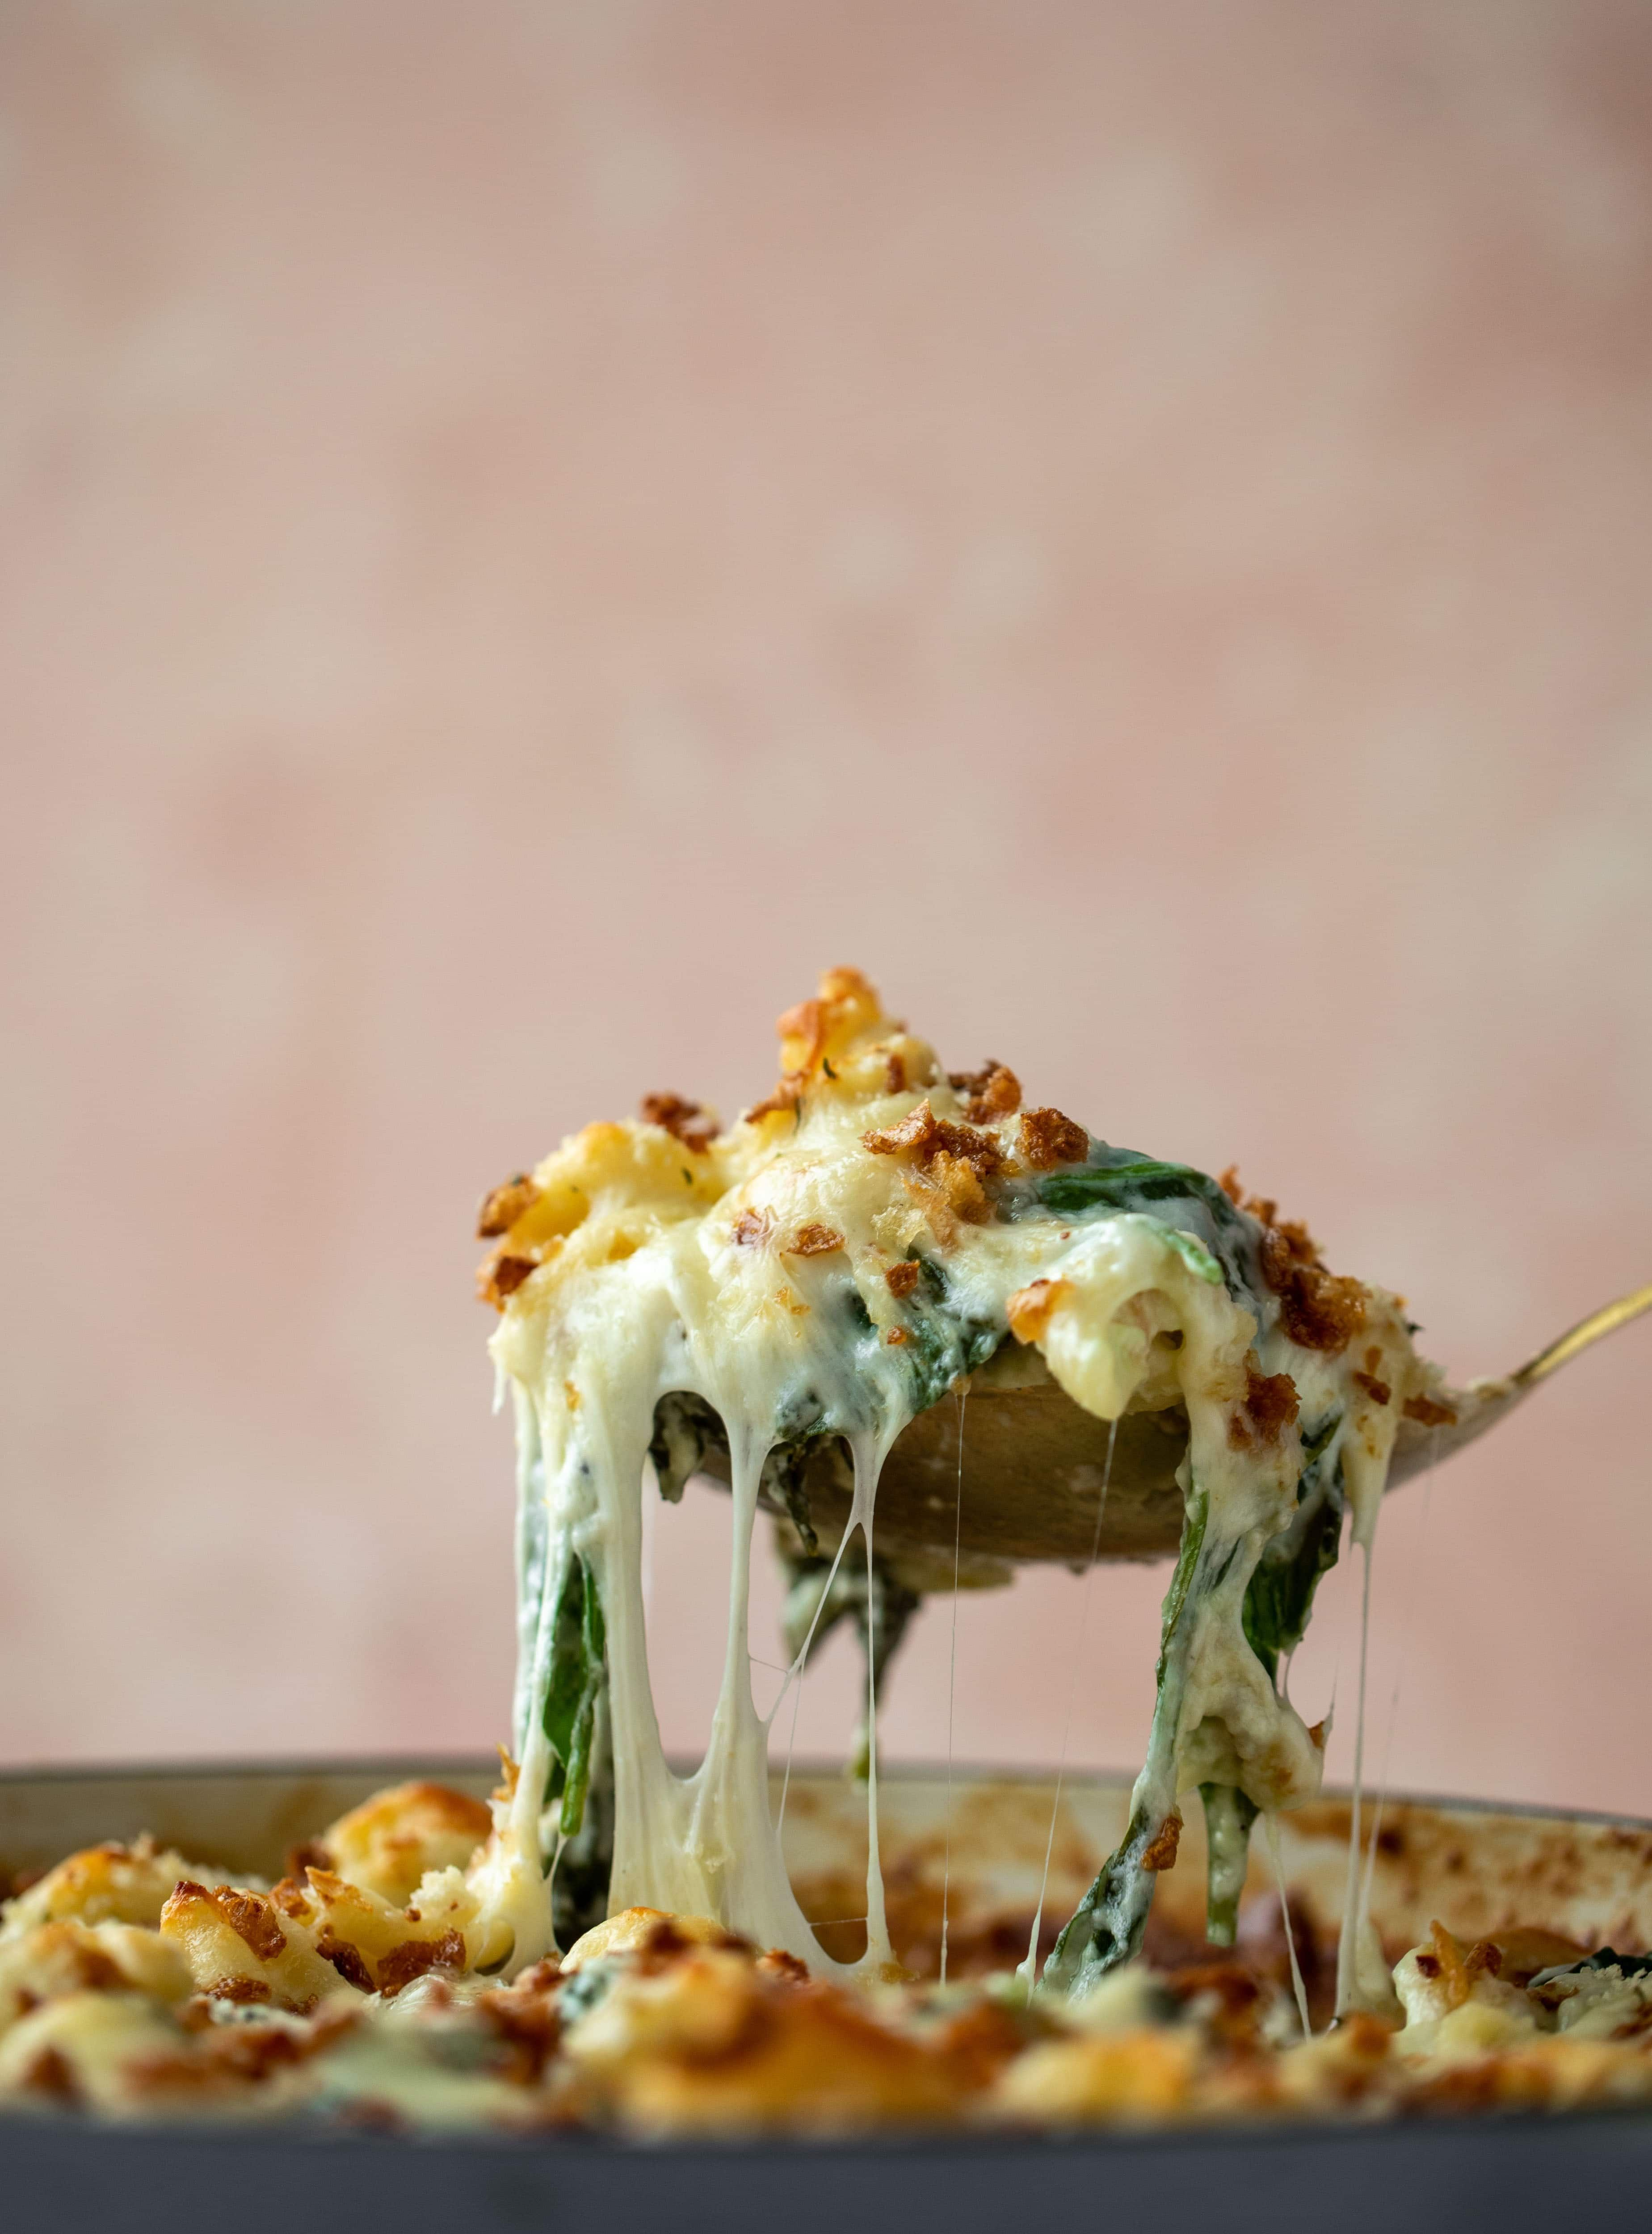 Creamed Spinach Mac And Cheese Recipe In 2020 Spinach Mac And Cheese Mac And Cheese Creamed Spinach